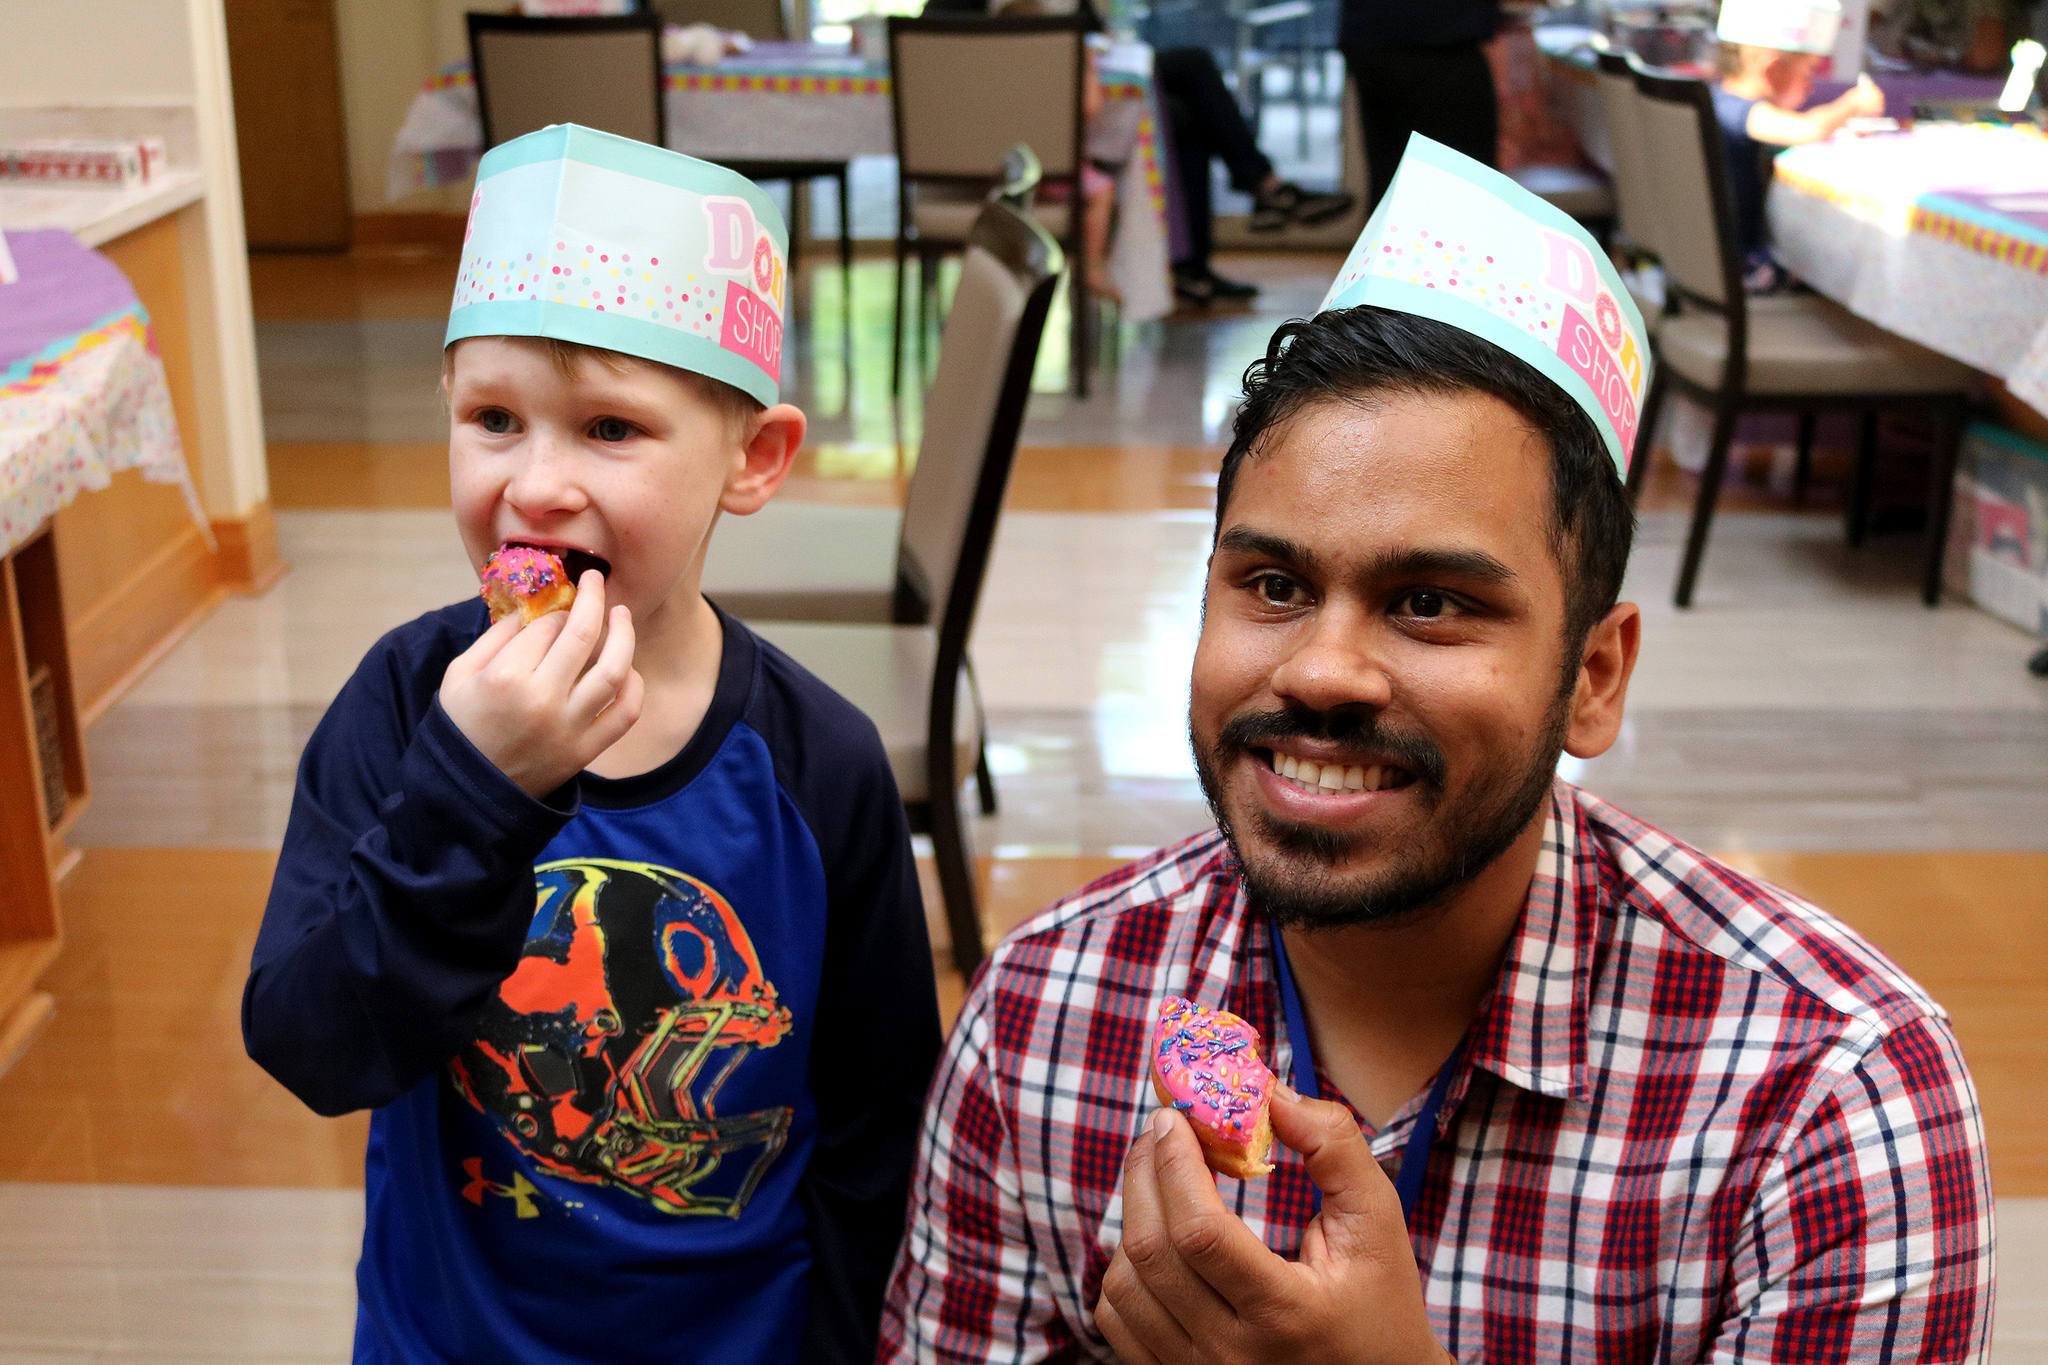 Javin and Abram at the donut party